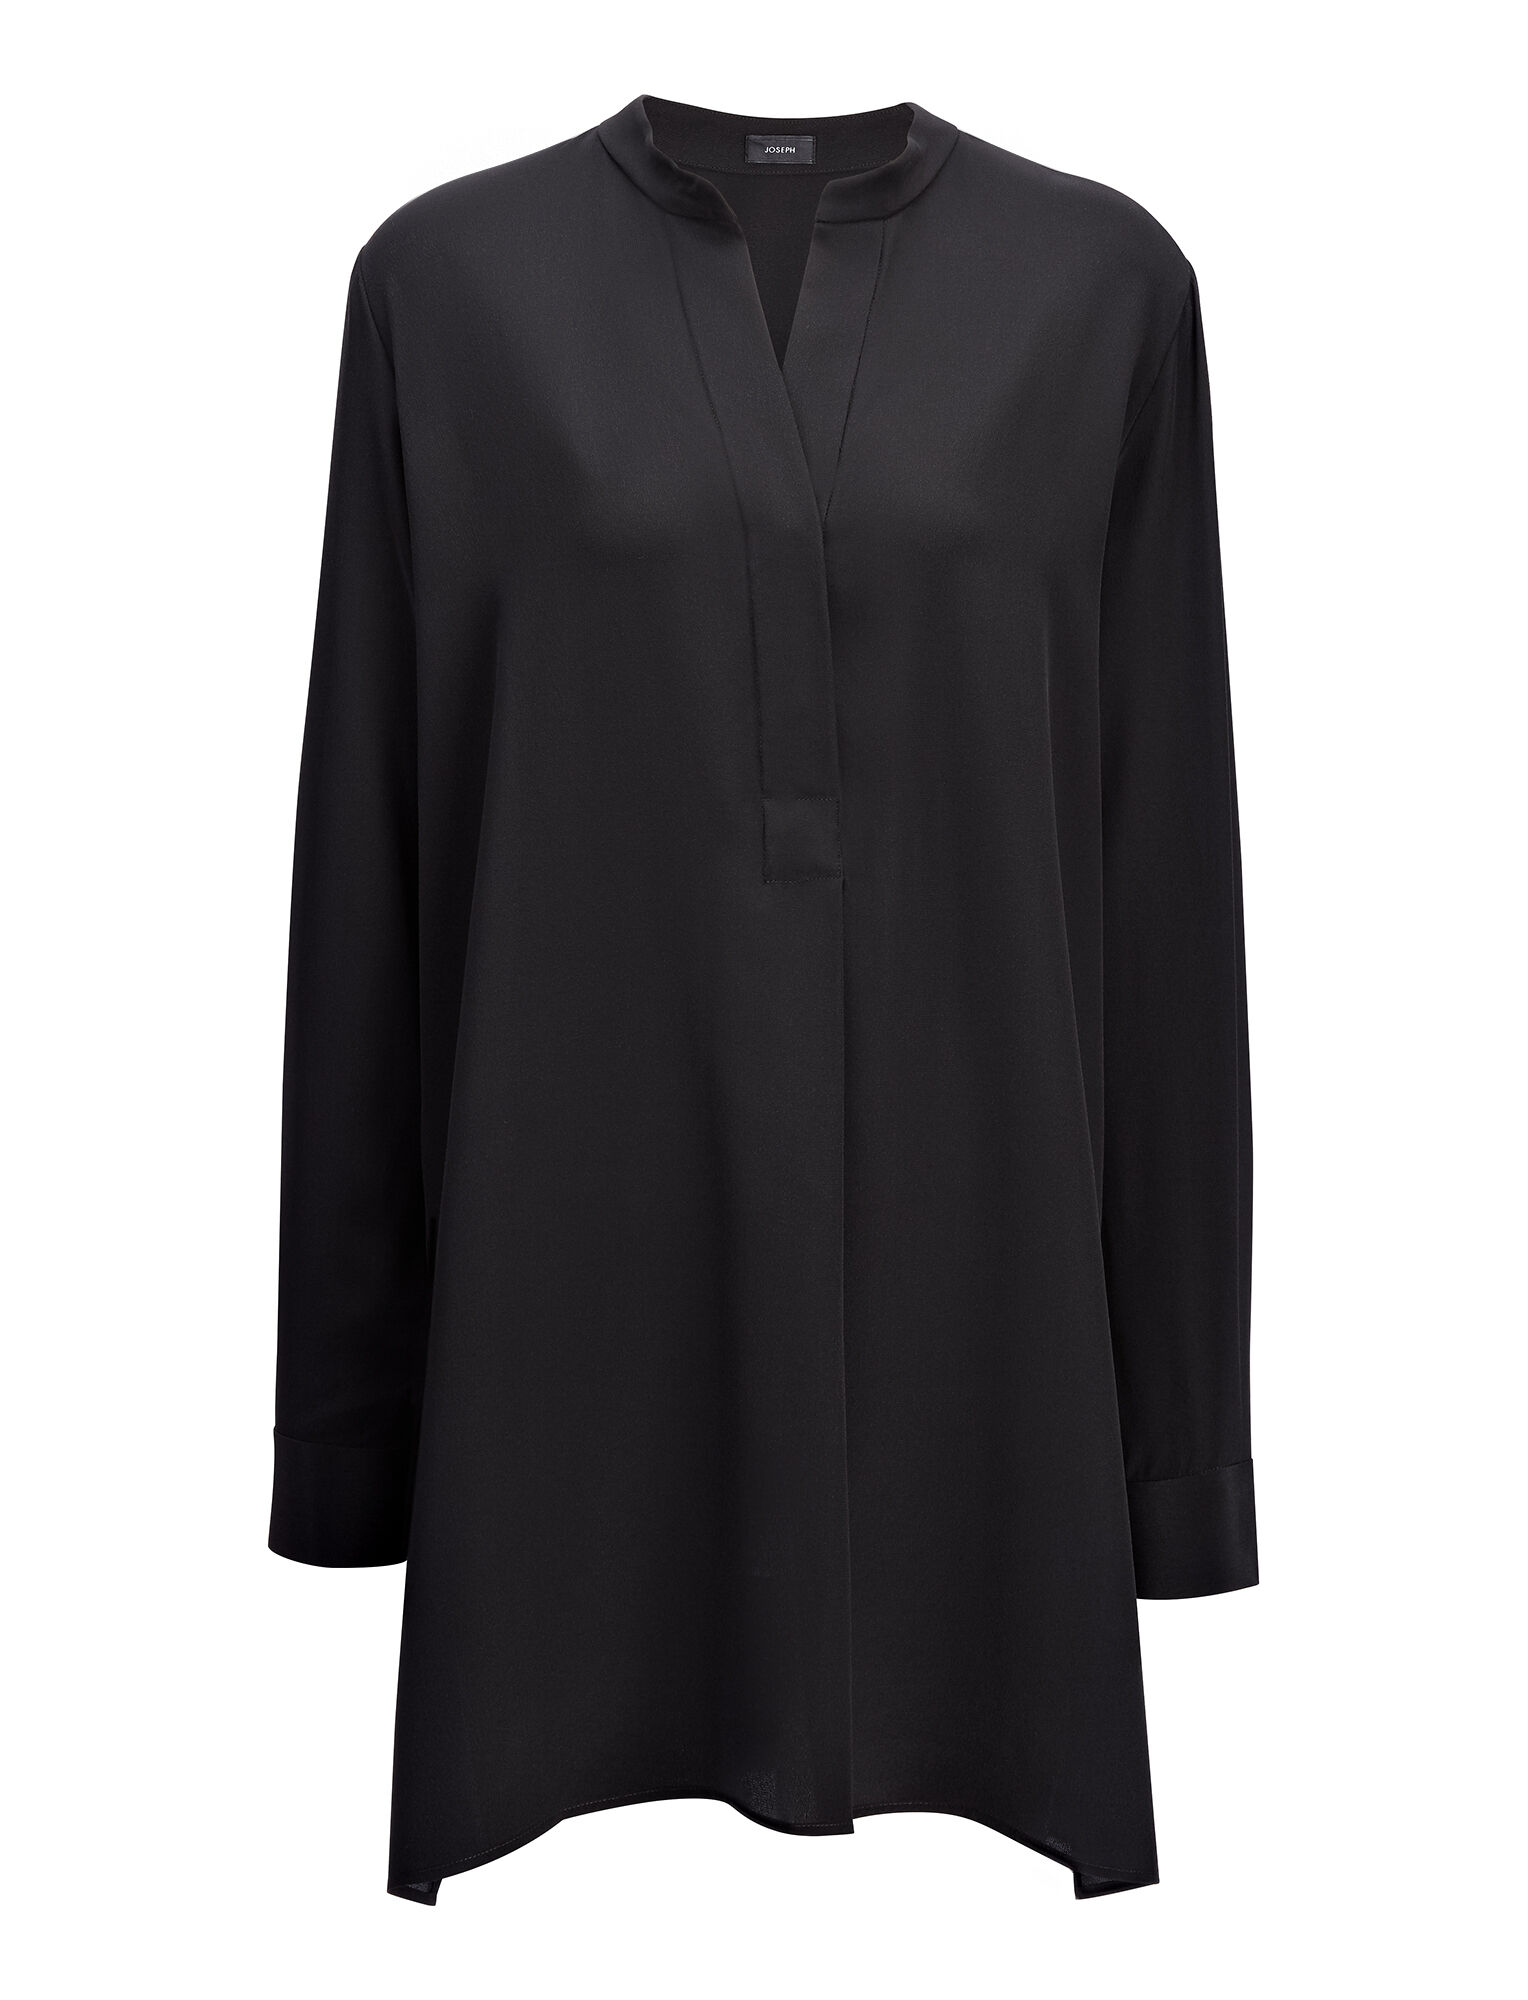 Joseph, Crepe de Chine New Dara Blouse, in BLACK